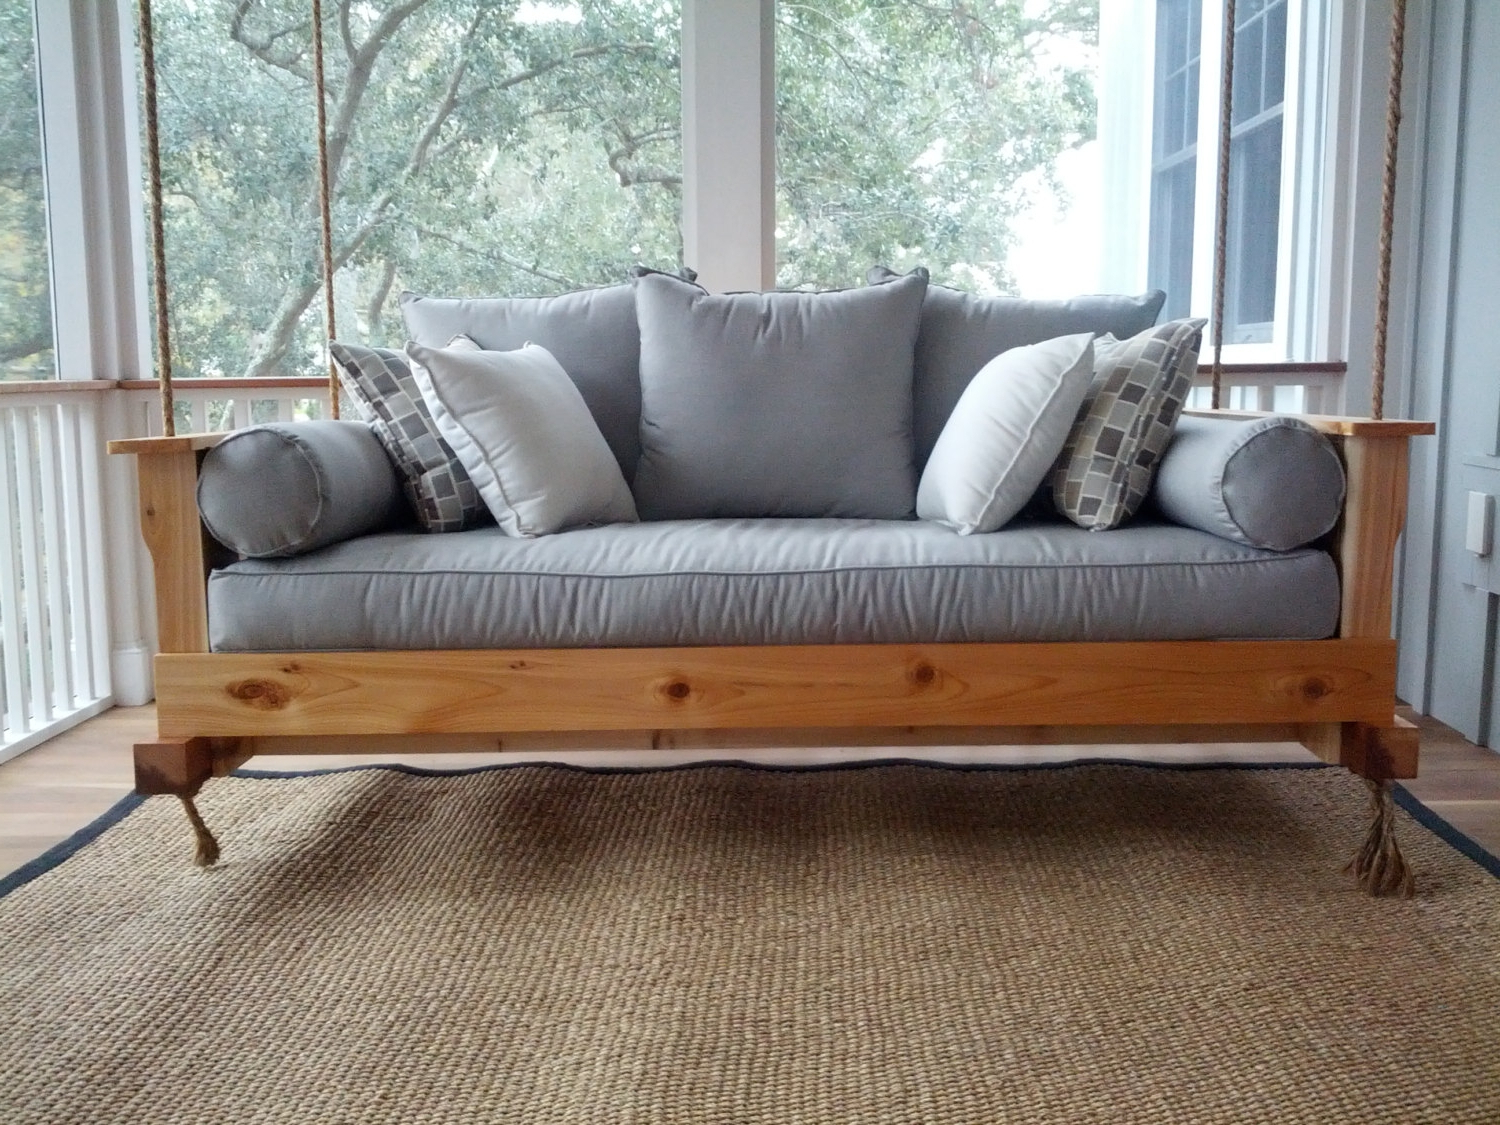 Most Recently Released Day Bed Porch Swings Regarding Daybed Porch Swing Cushions (Gallery 6 of 30)